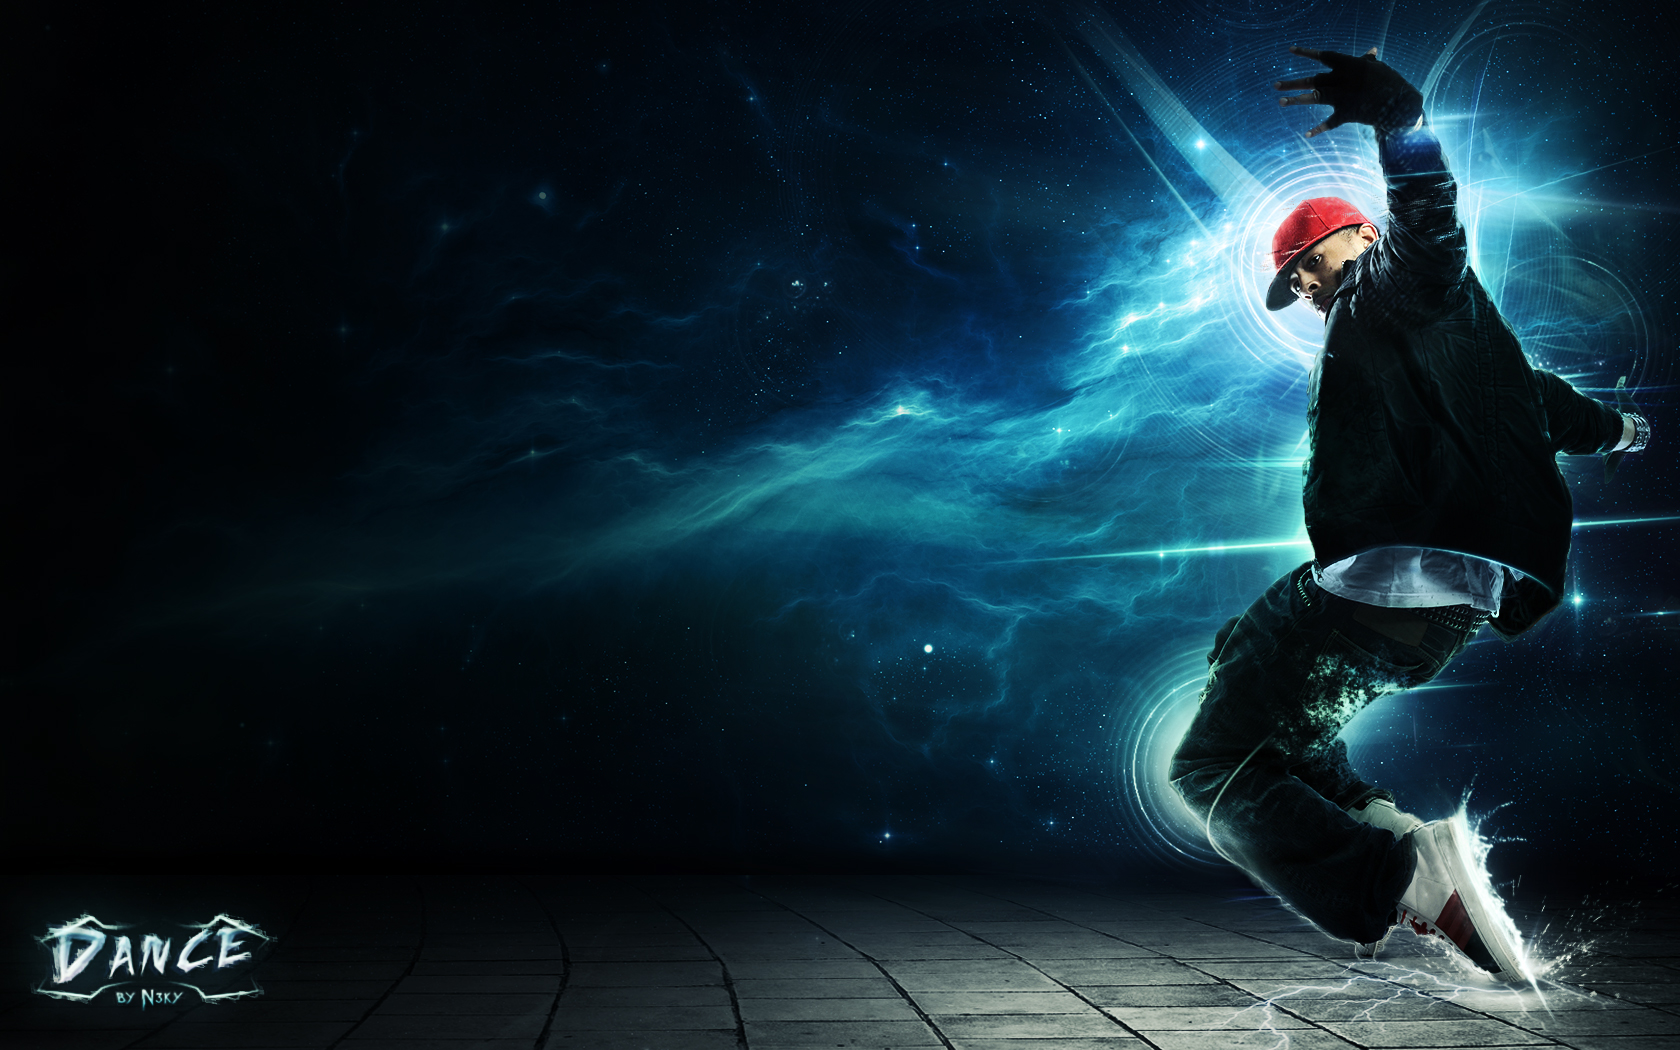 Download Dubstep Dance Wallpaper Gallery